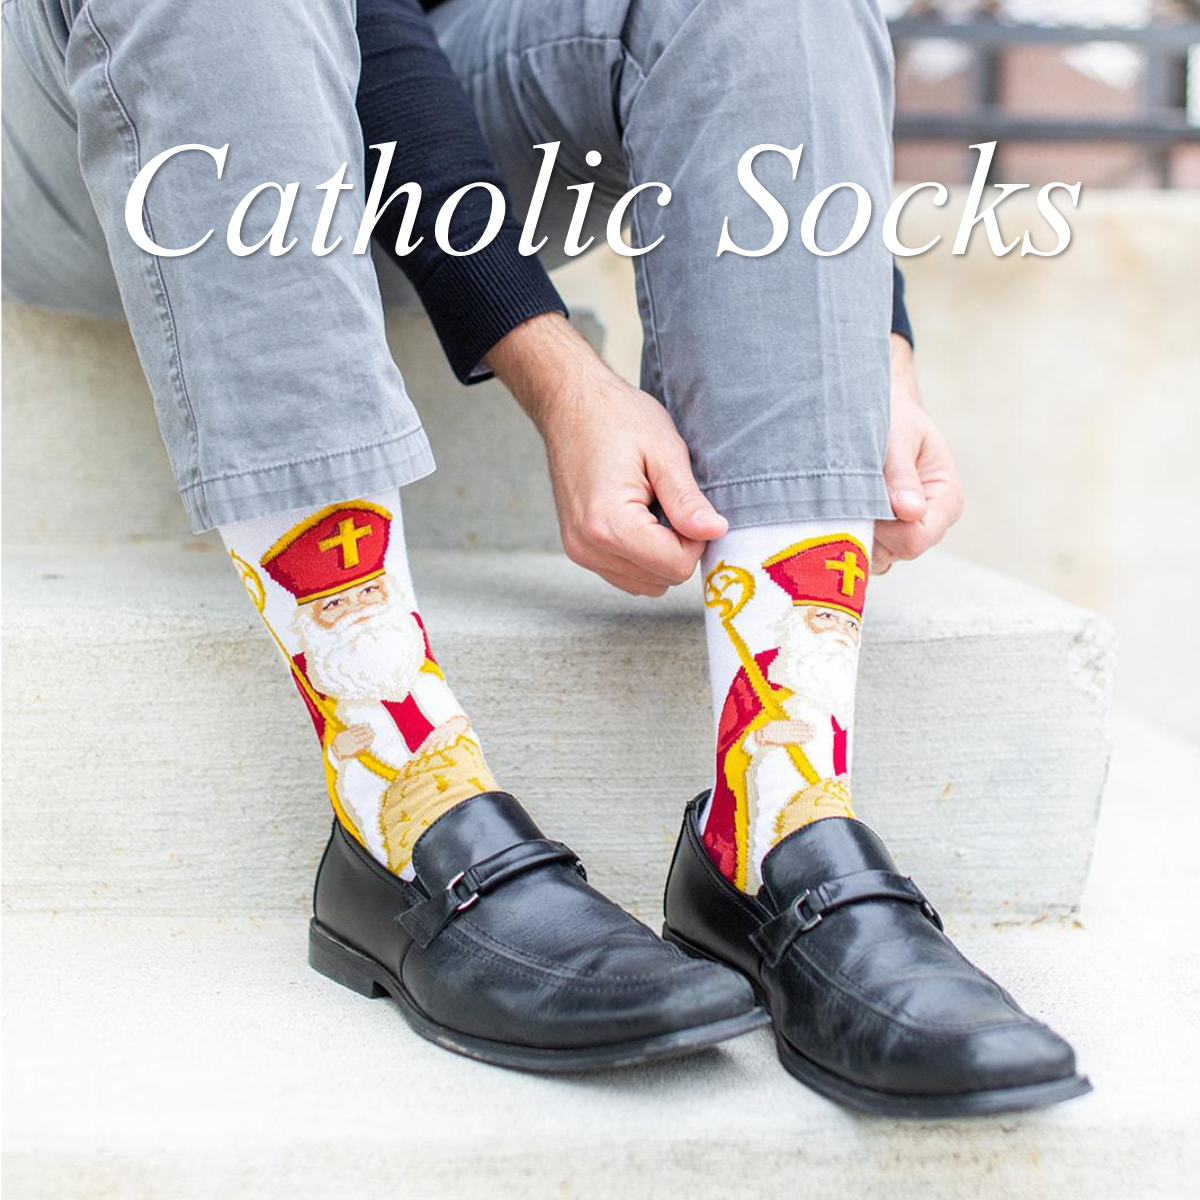 Catholic Socks